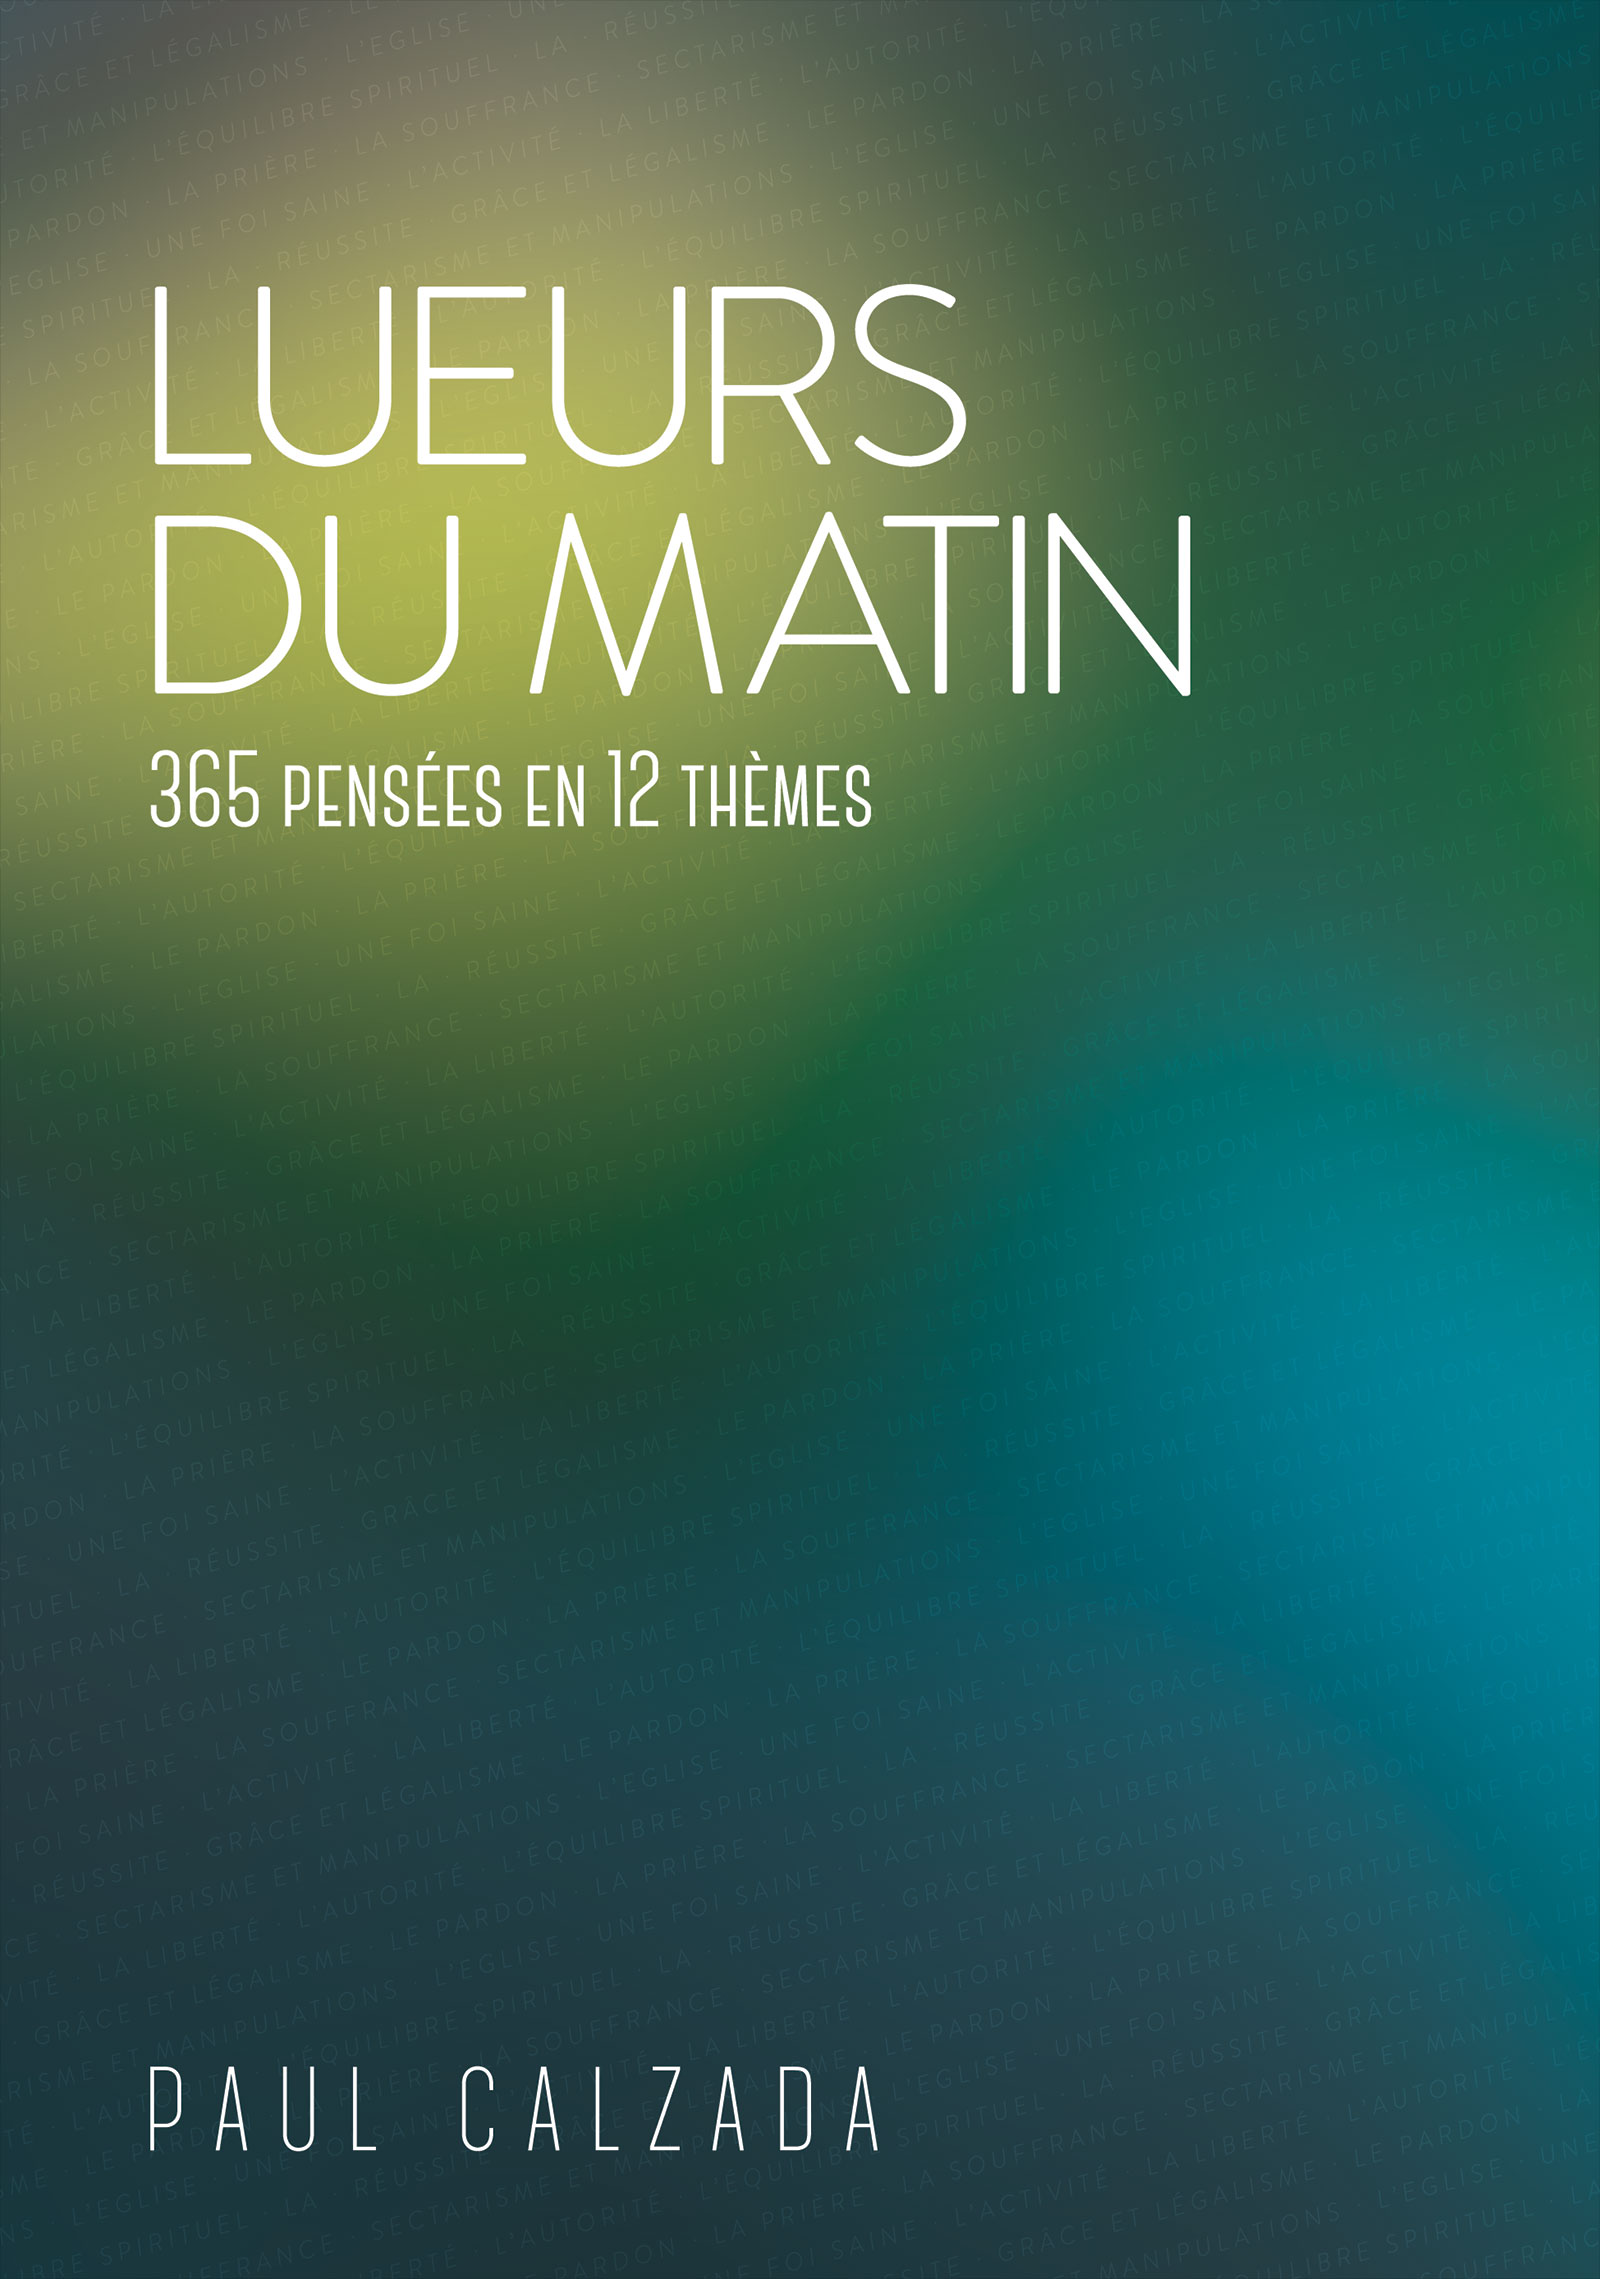 sublime-digital_lueurs-matin-book-cover-01